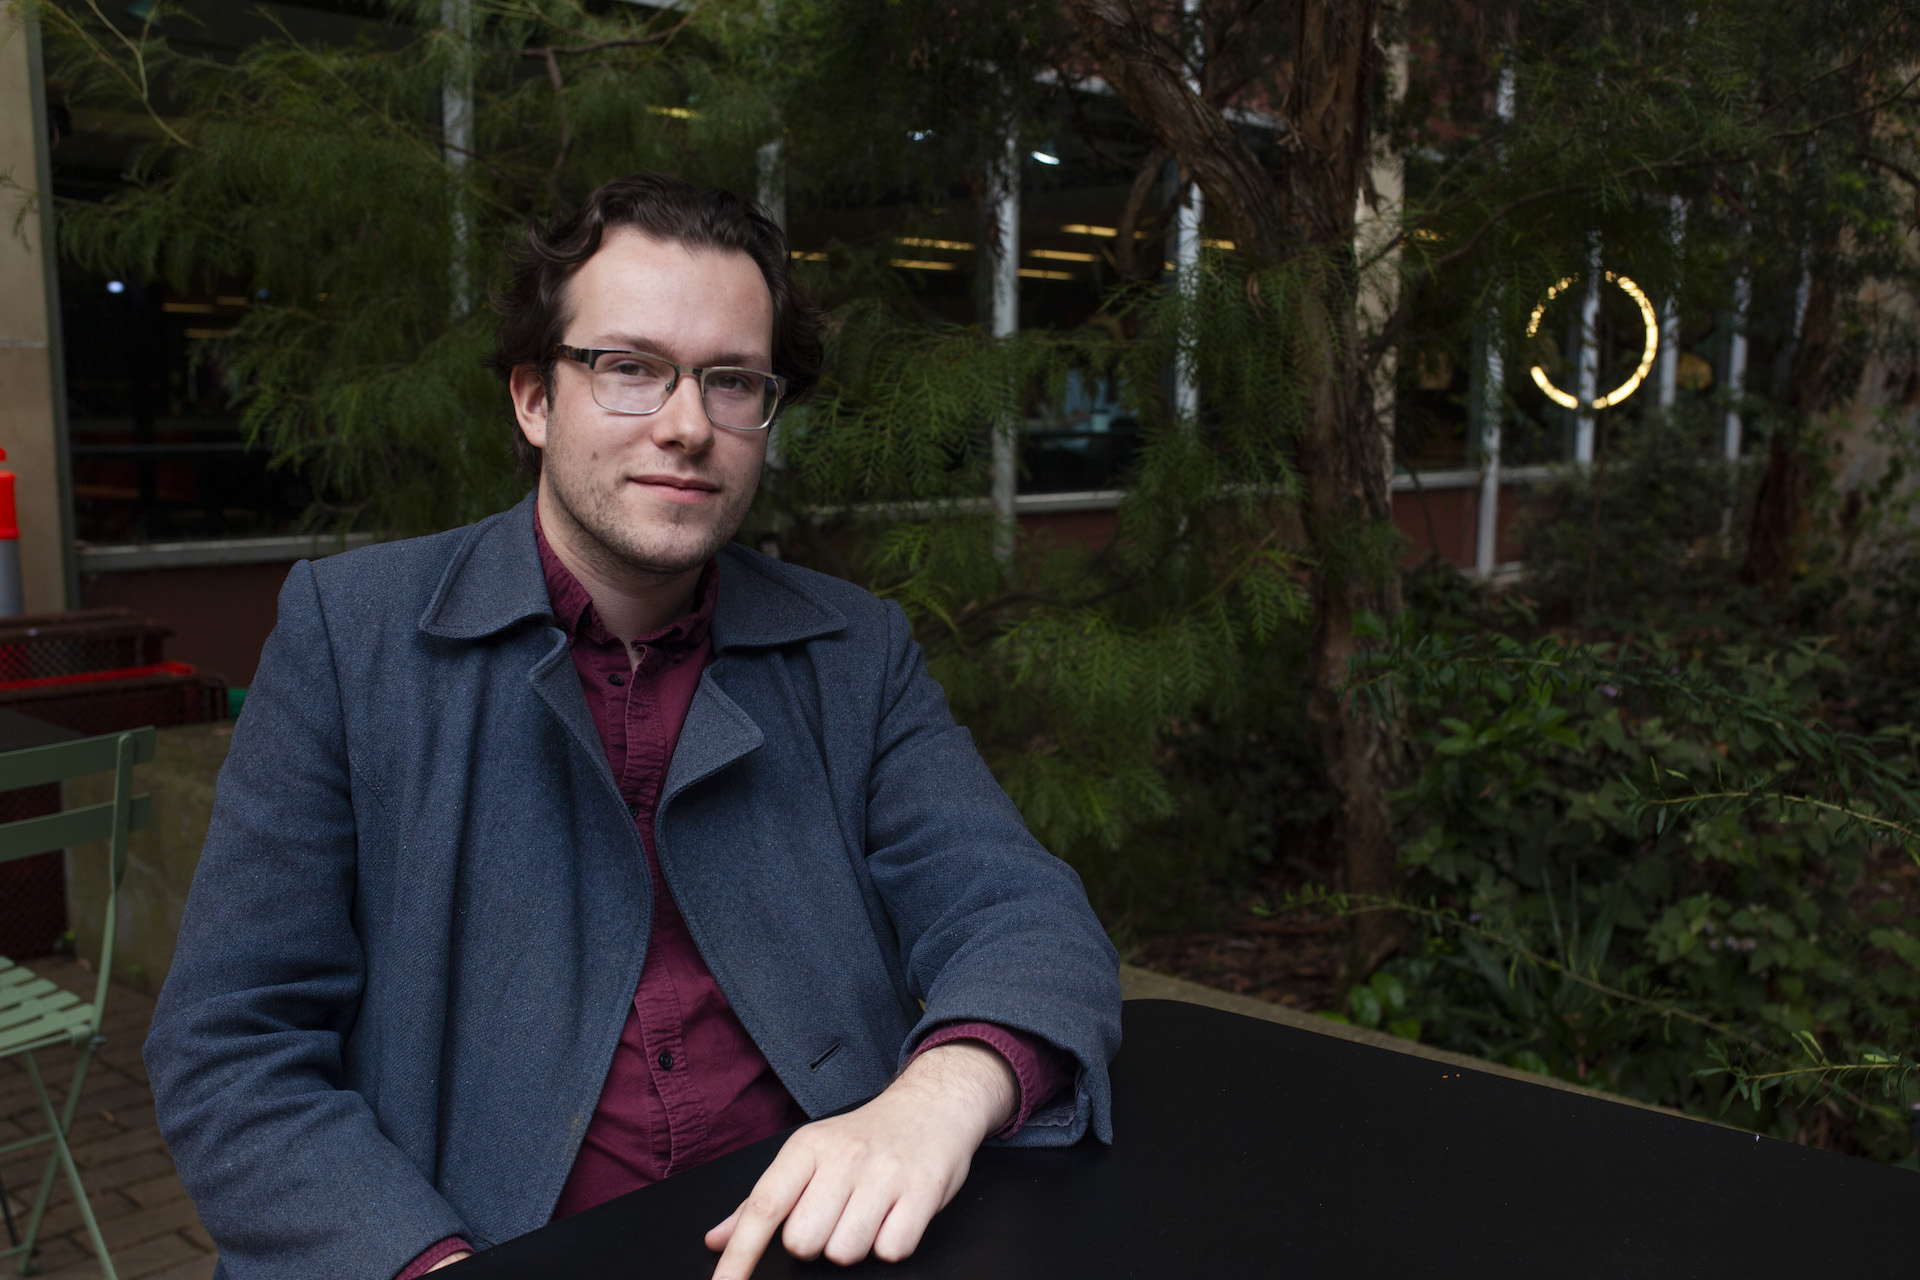 """""""It just doesn't seem like [the job agencies] are doing the job that they're supposed to be doing"""": Isa Pendragon, who was initially overjoyed to be approved for the payment, but felt his job provider treated him inappropriately through Melbourne's lockdowns. Photo: Ashleigh Barraclough"""